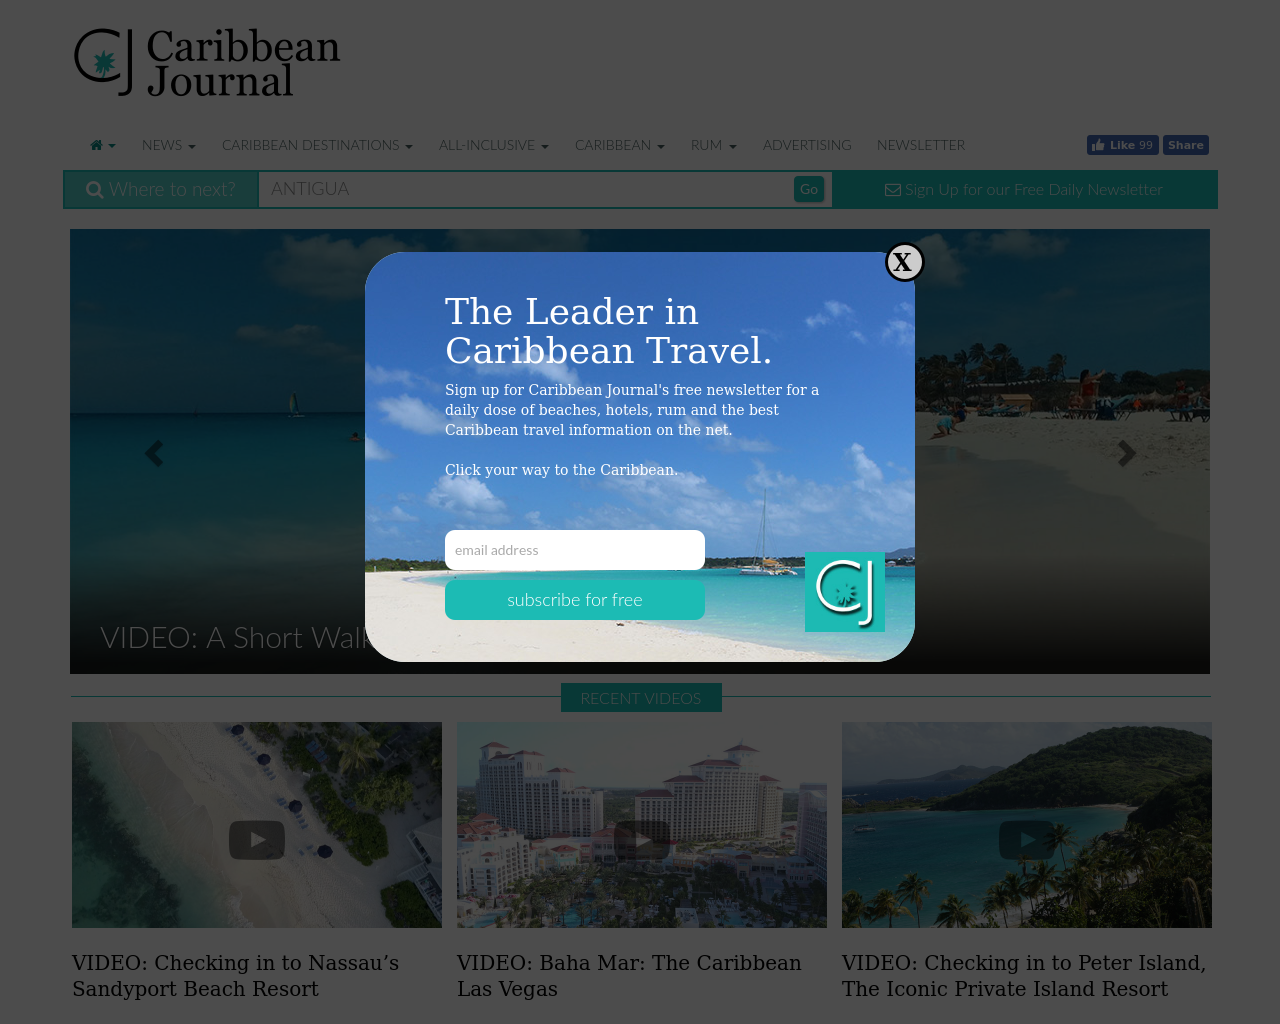 Caribbean-Journal-Advertising-Reviews-Pricing